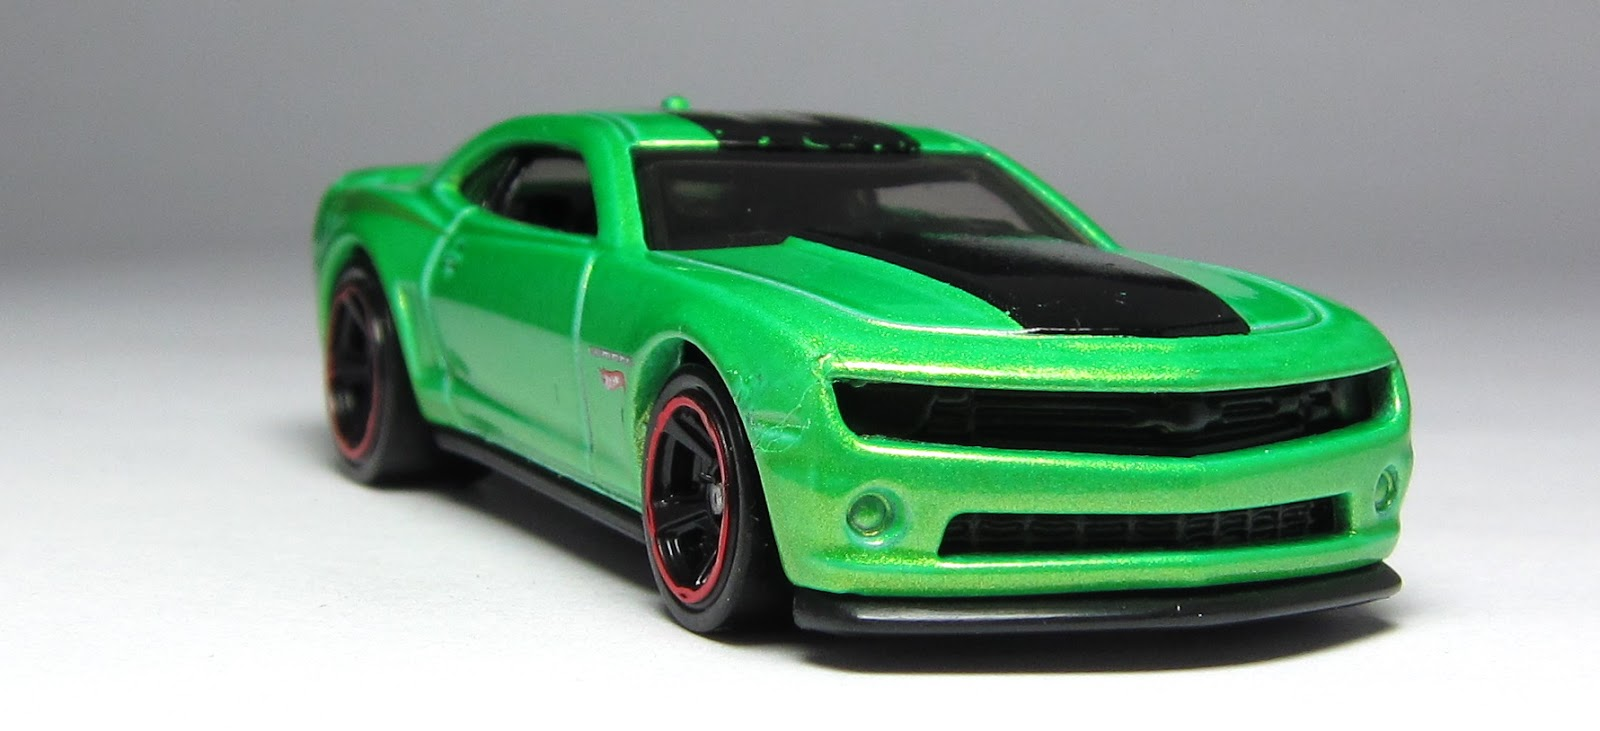 first look hot wheels 70 buick gsx 2013 chevy camaro special edition in green thelamleygroup. Black Bedroom Furniture Sets. Home Design Ideas